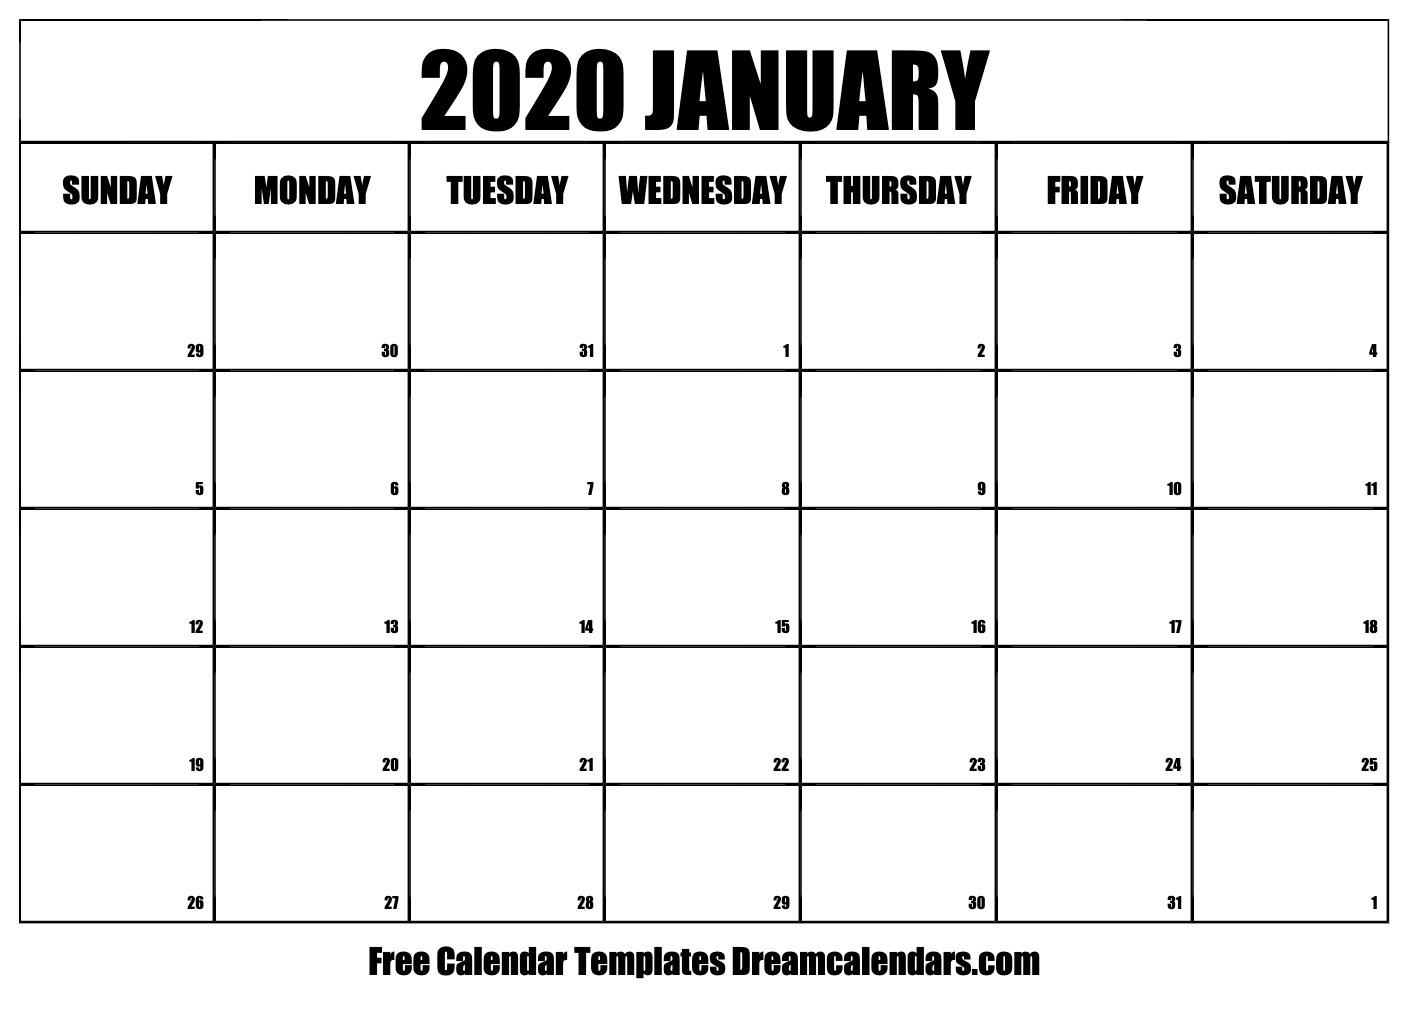 Printable January 2020 Calendar for Free Liturgical Church Calendar For 2020